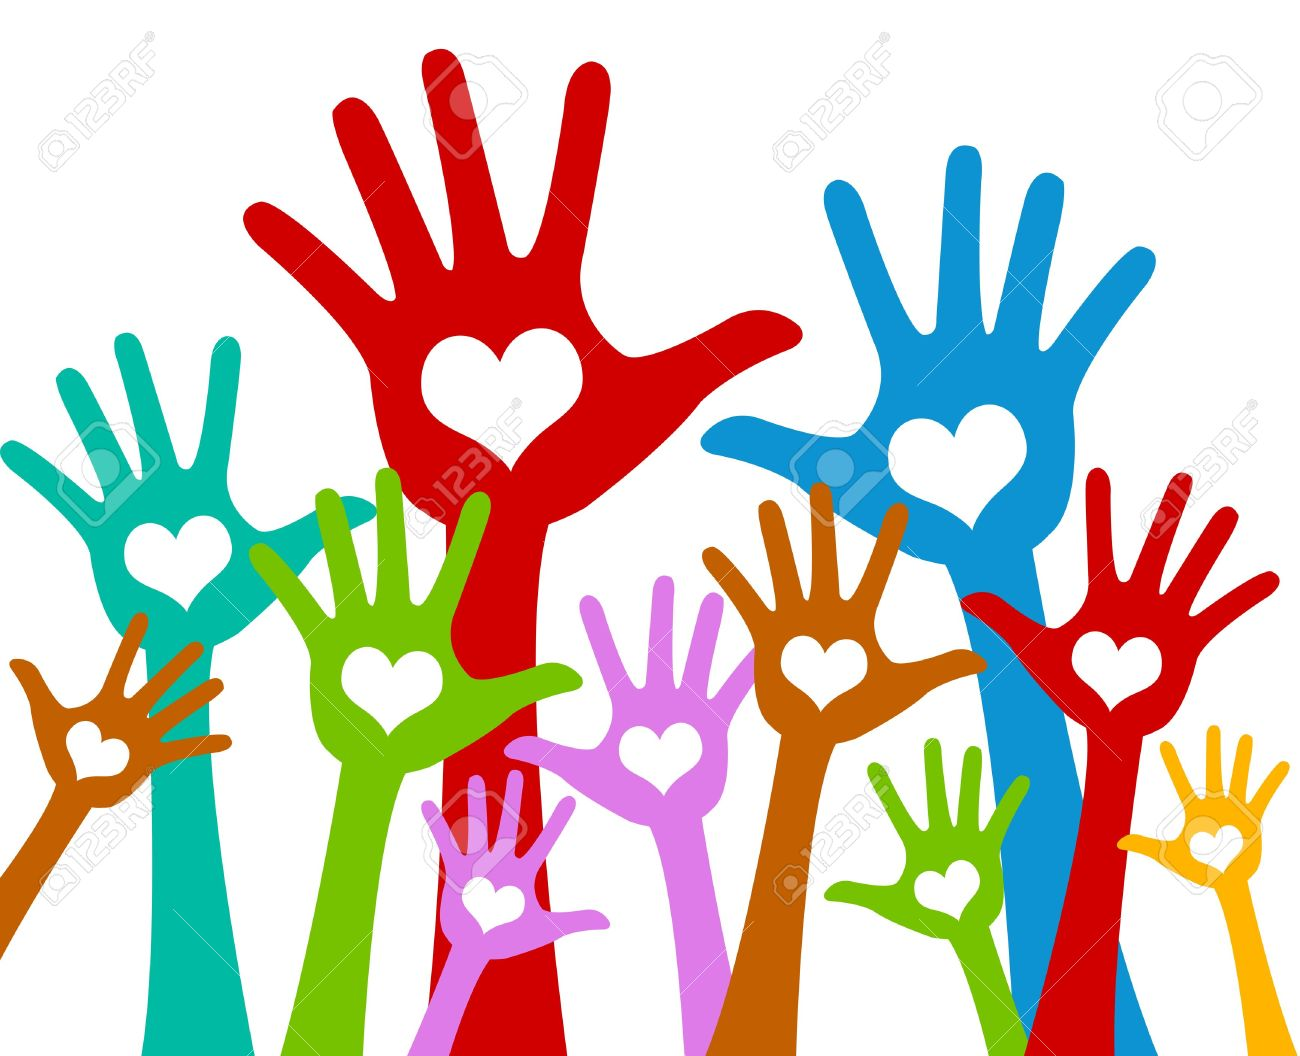 The Colorful Raised Hands With Heart For Volunteer and Voting Concept Isolated On White Background - 17509973